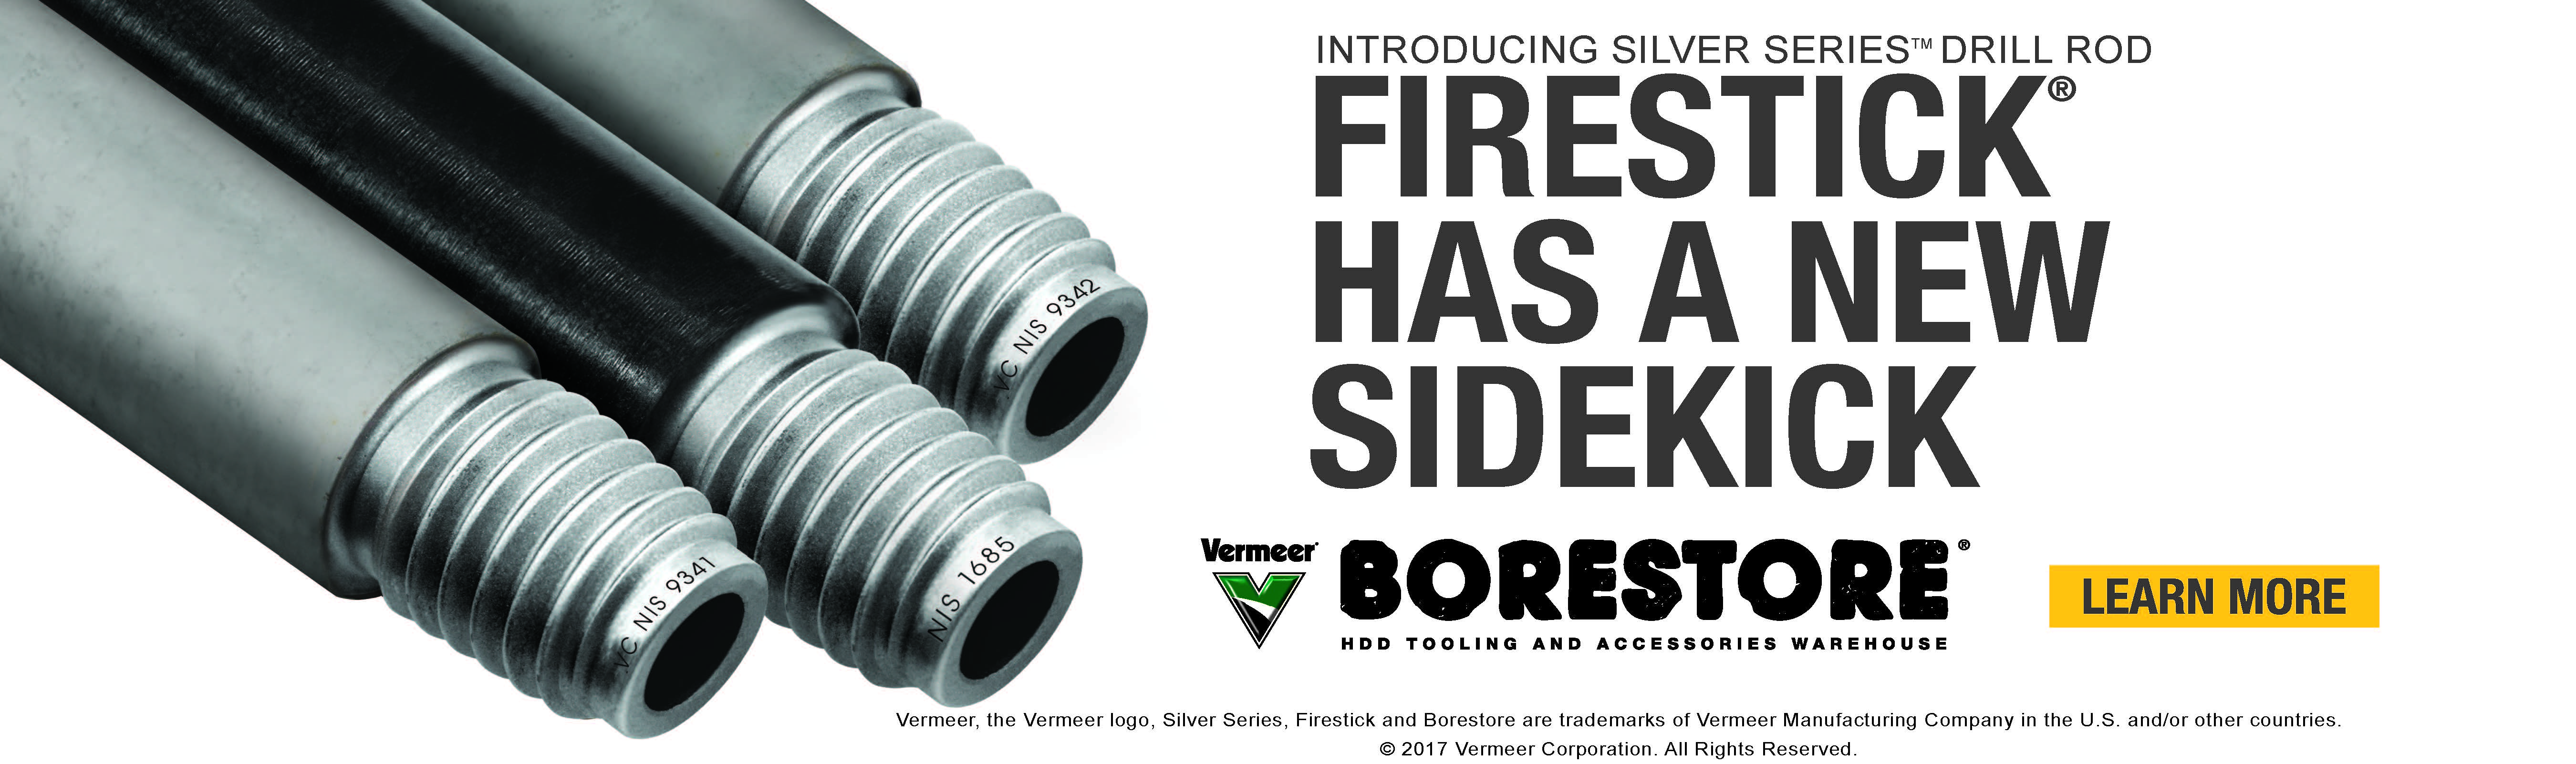 Introducing Silver Series Drill Rod, now available at the Vermeer Borestore. Learn More.